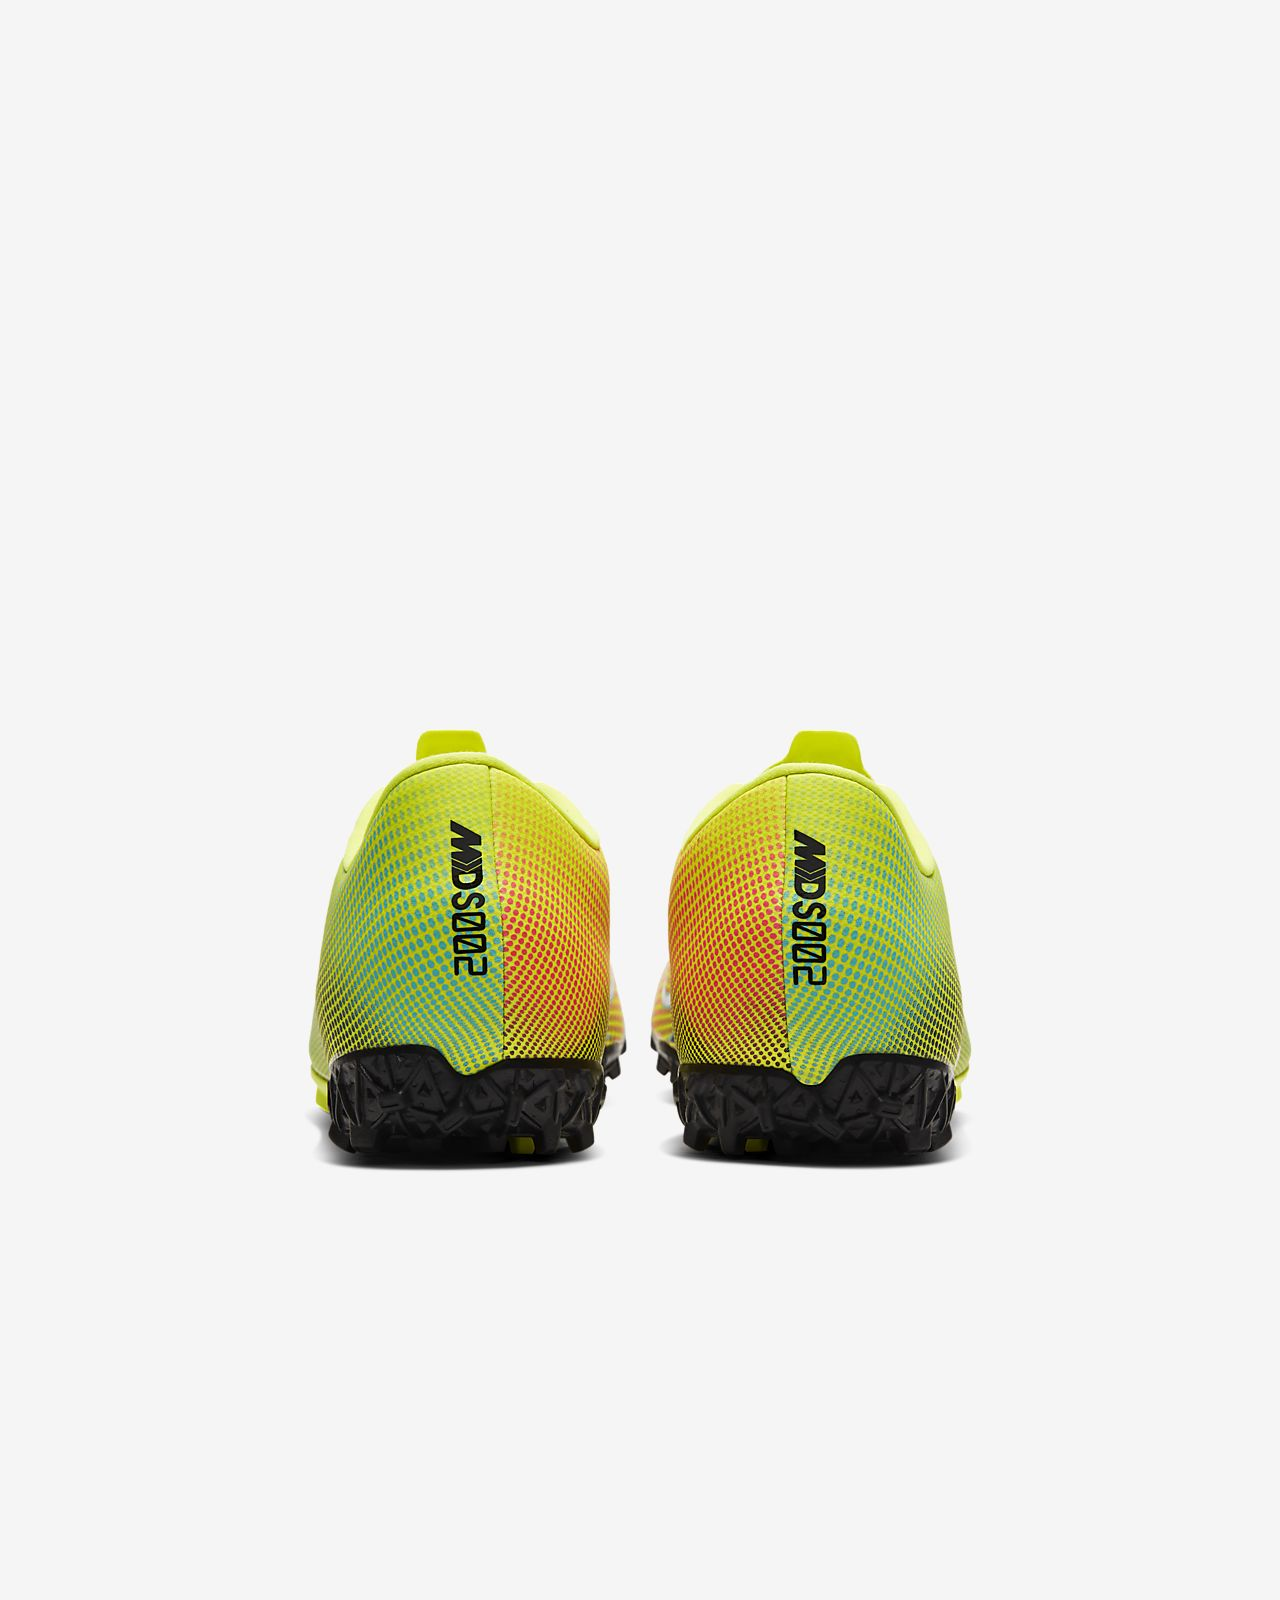 Chaussure de football pour surface synthétique Nike Mercurial Vapor 13 Academy MDS TF